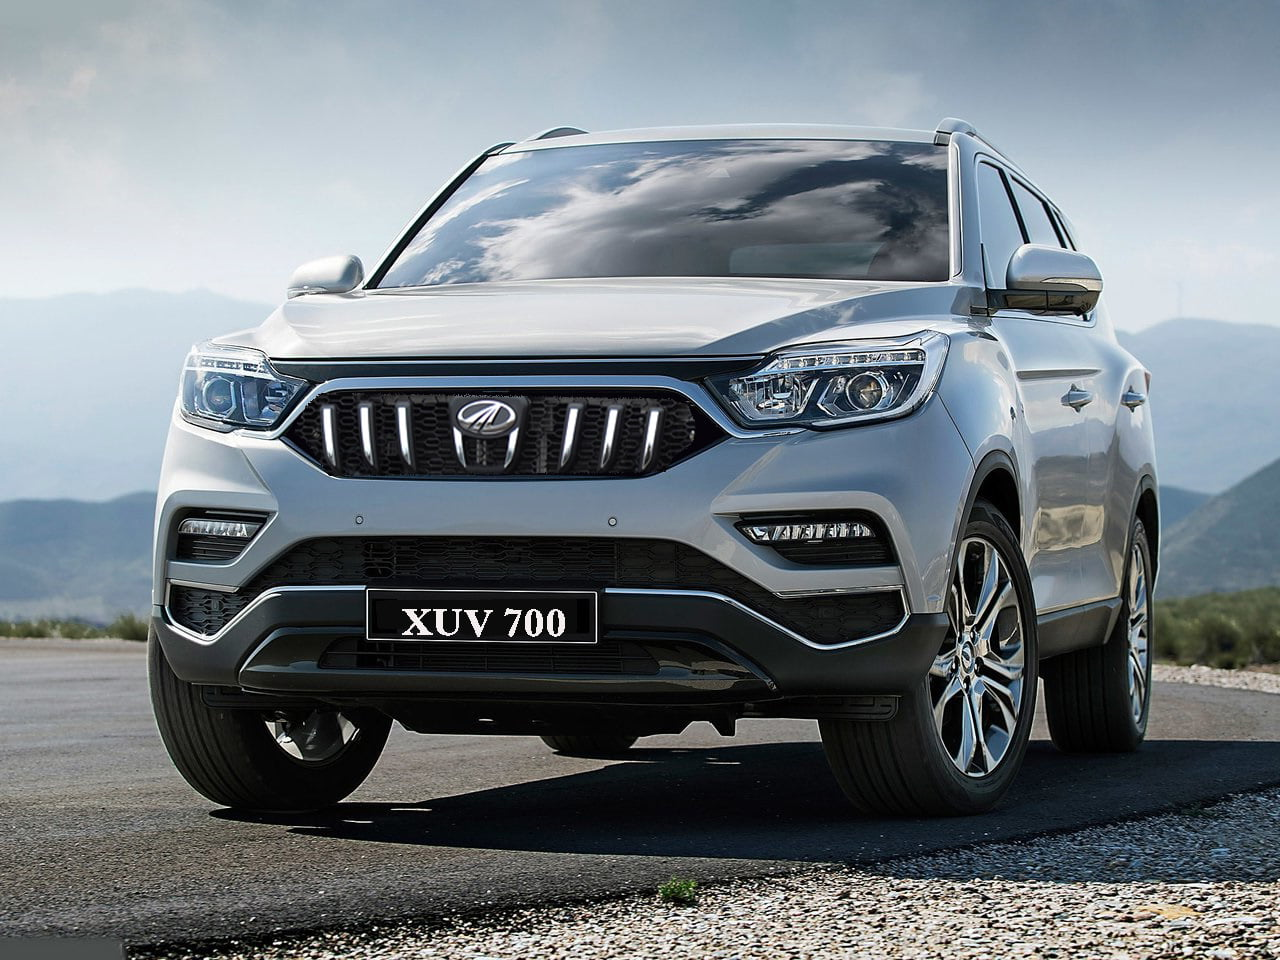 2018 Mahindra Xuv700 To Rival Toyota Fortuner Launch Next Year